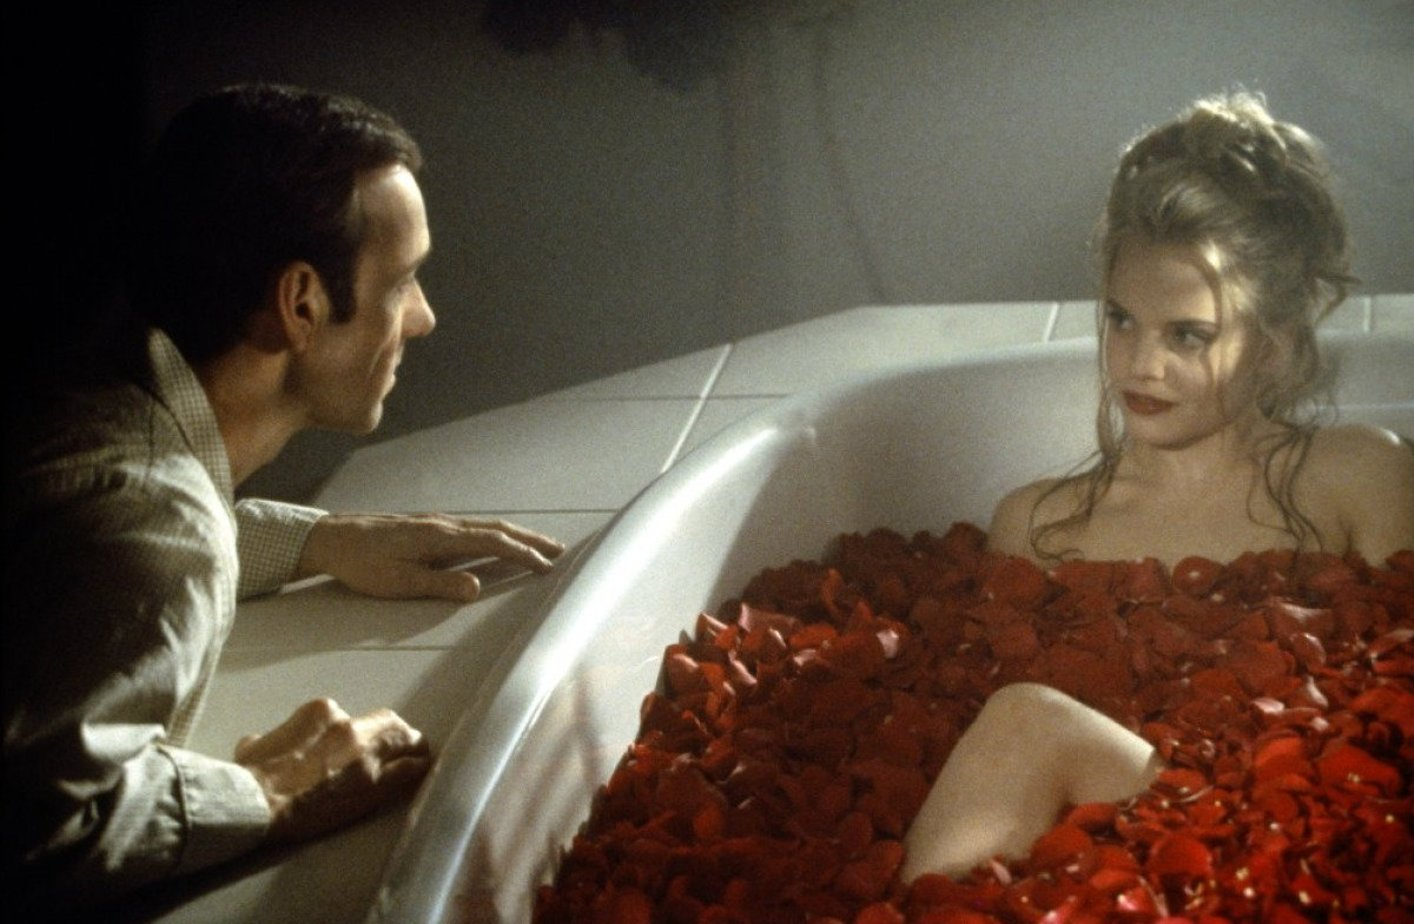 stereotyping in modern movies on the example of american beauty by sam mendes